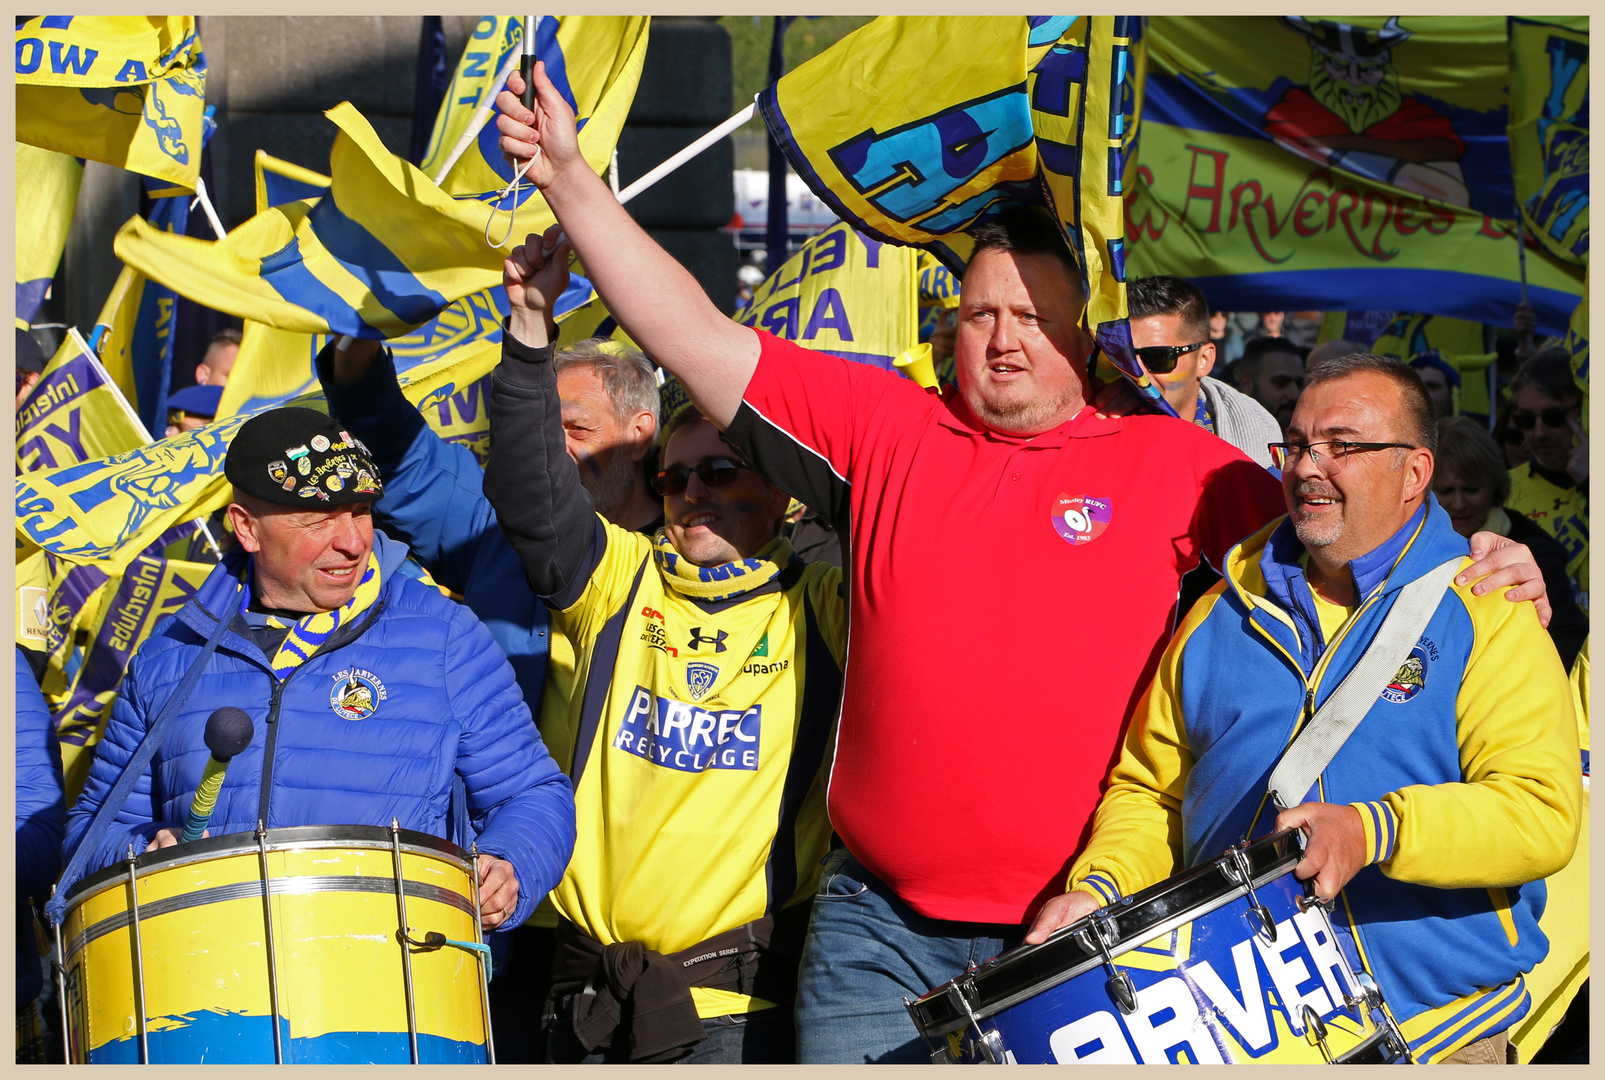 Clermont rugby fans 11 in newcastle